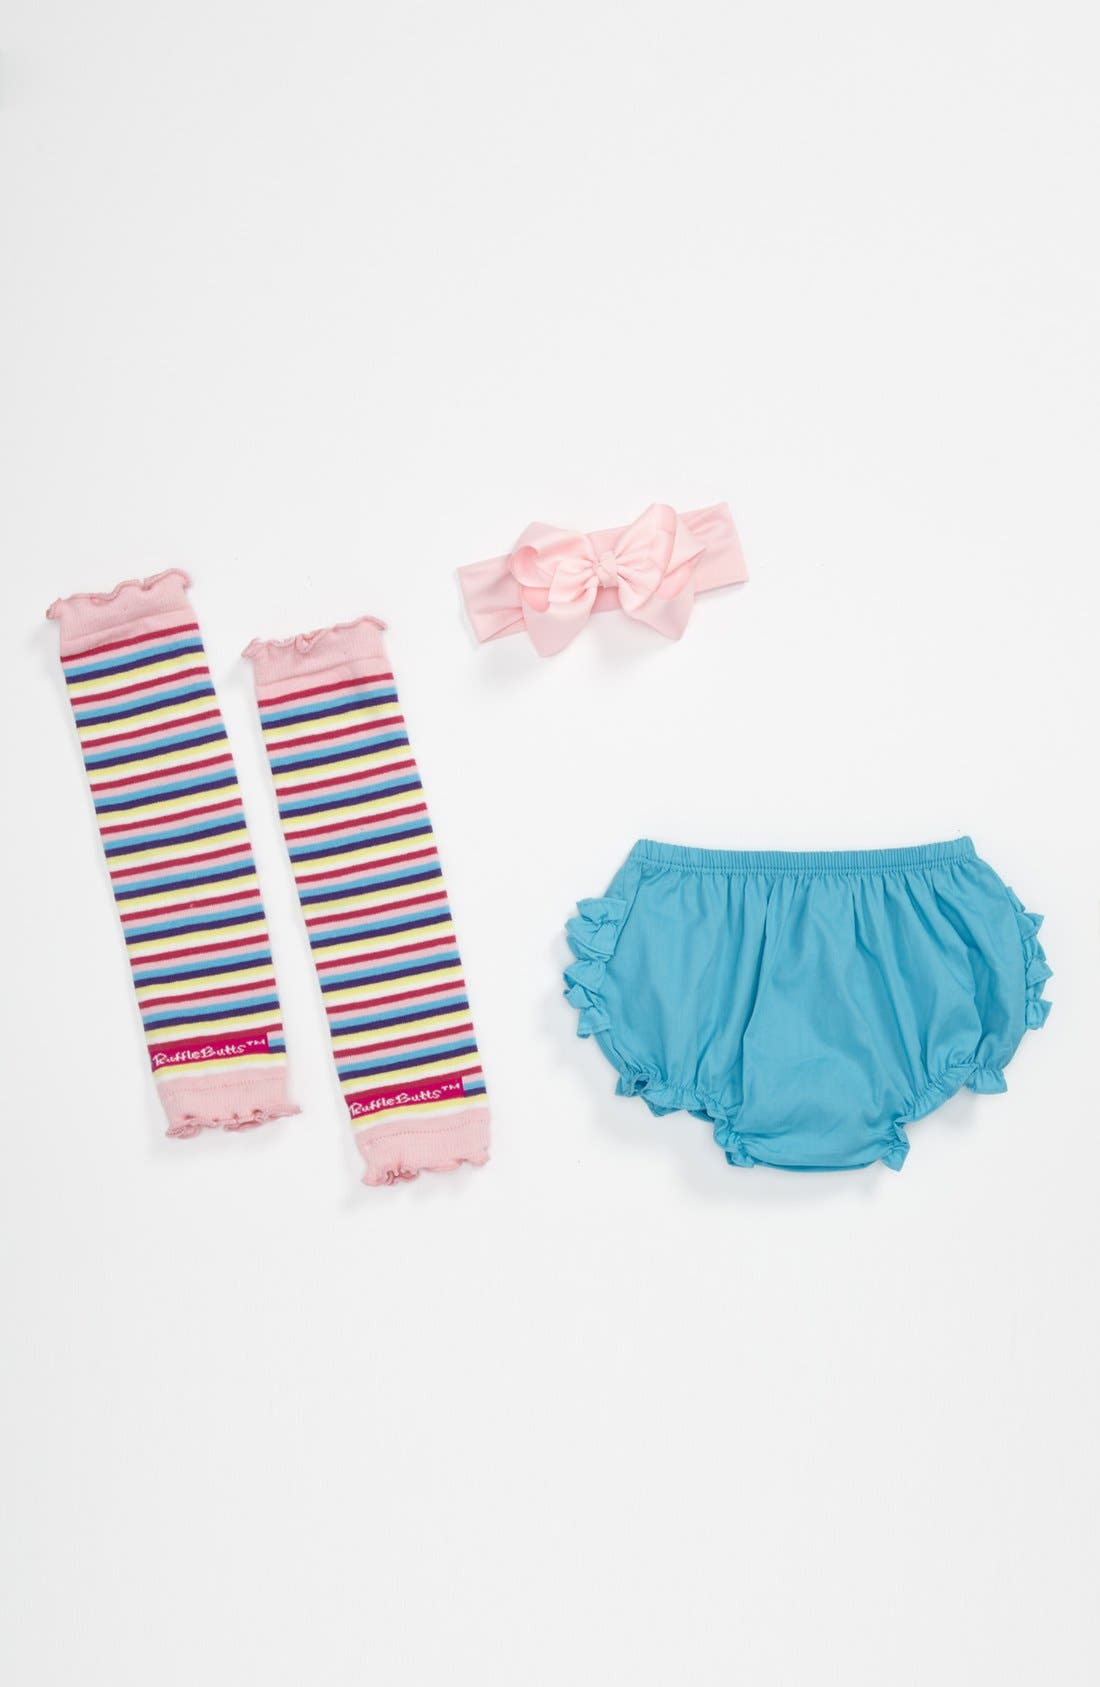 Alternate Image 1 Selected - RuffleButts 'Teal & Pink' Headband, Bloomers & Leg Warmers (Baby)